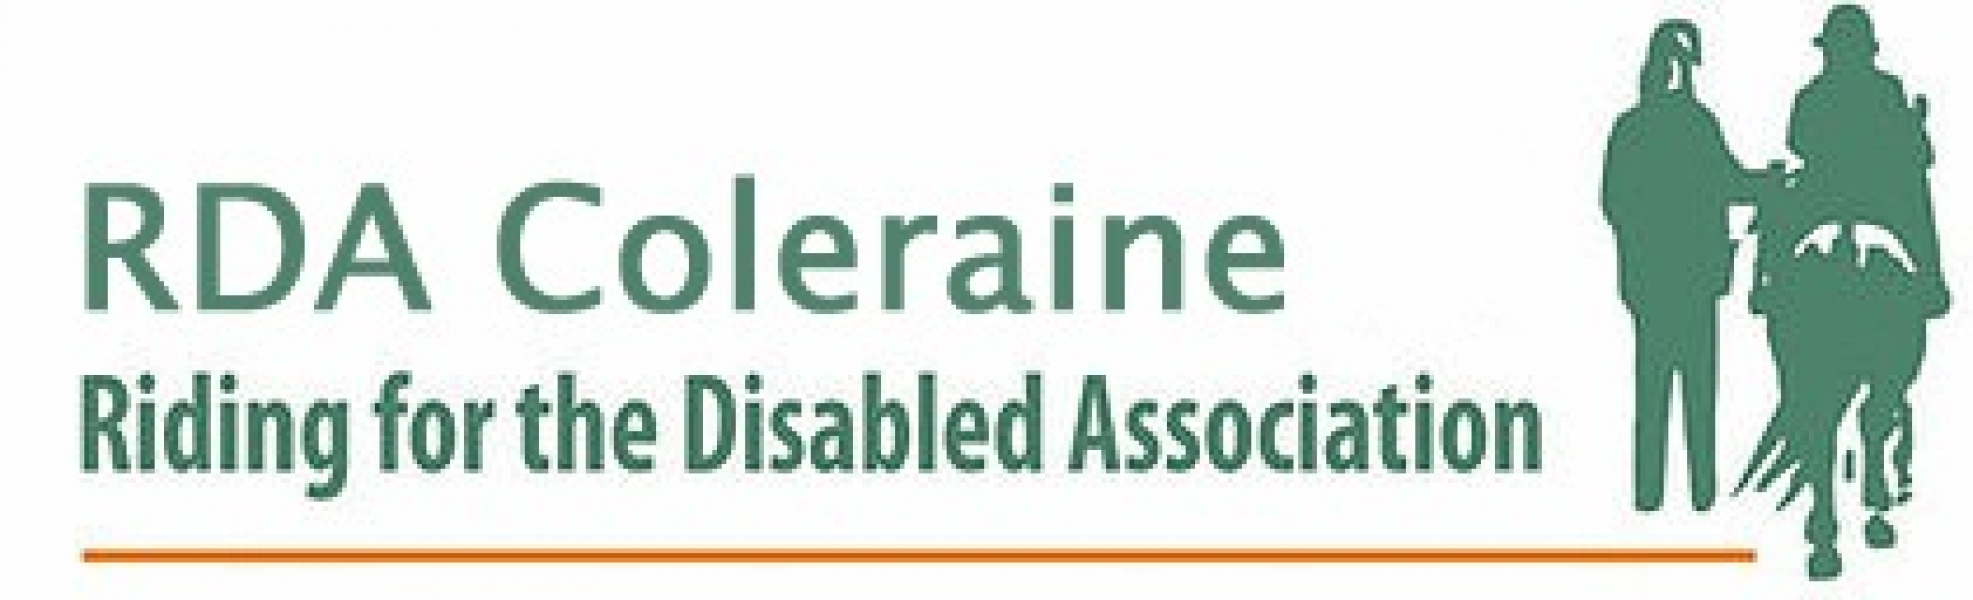 Riding for the Disabled Association - Coleraine Group eCards